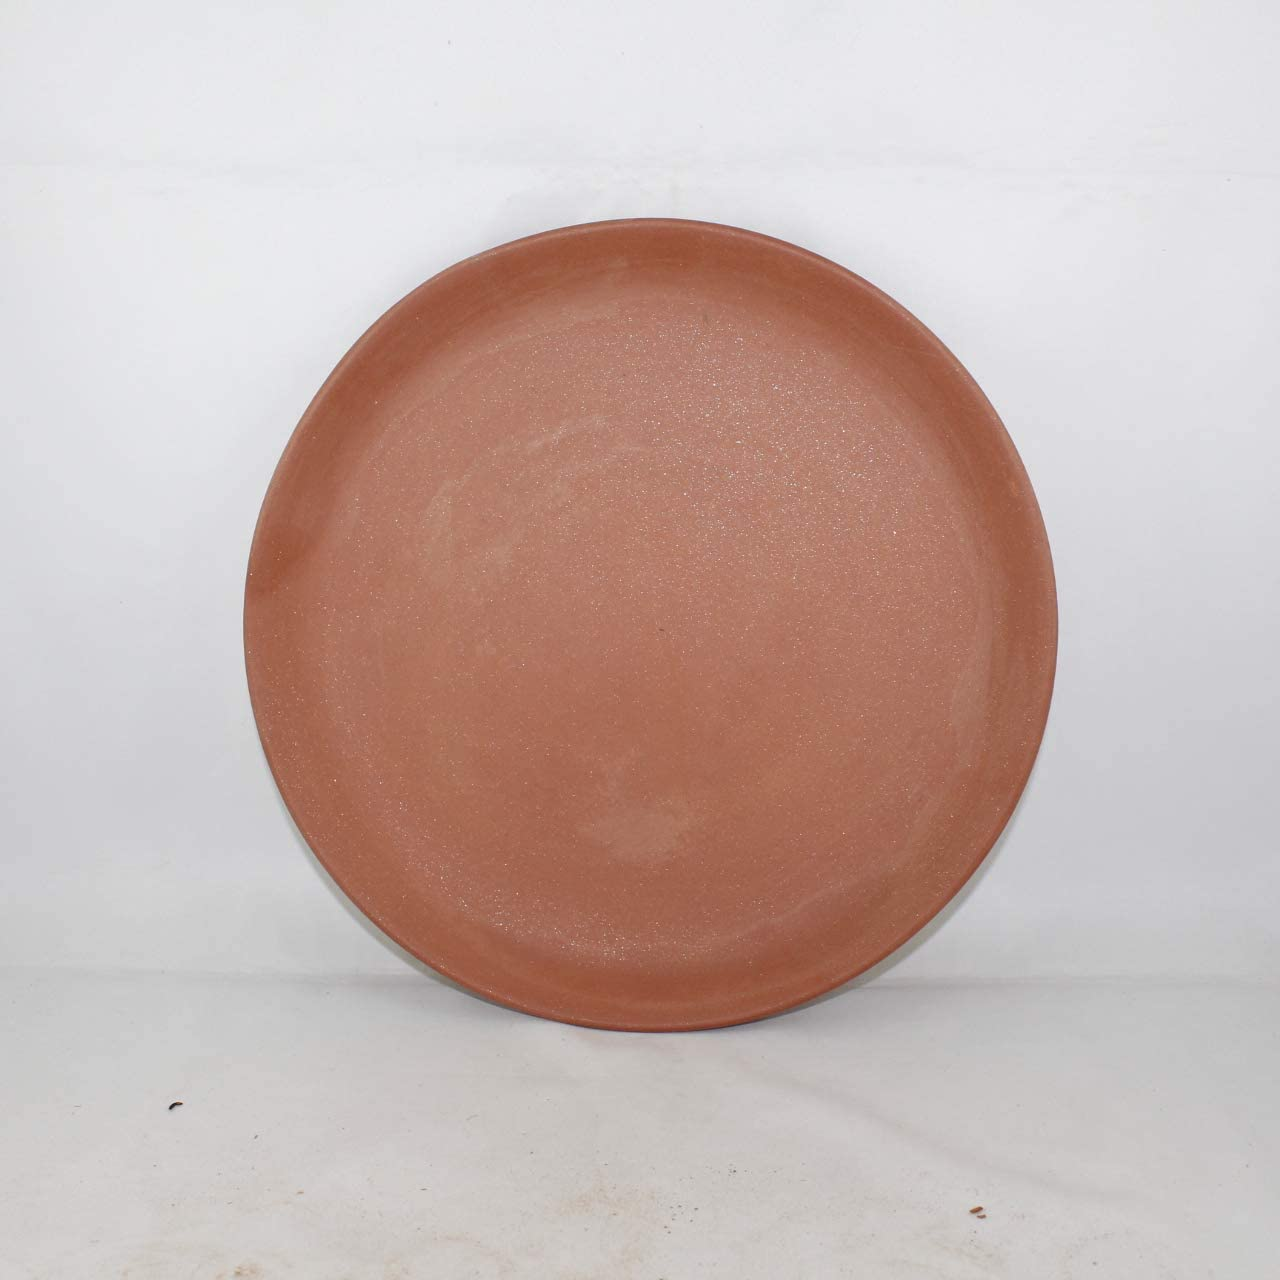 11 Inch Clay Chapati Plate 100% Natural Cay & Health Benefits